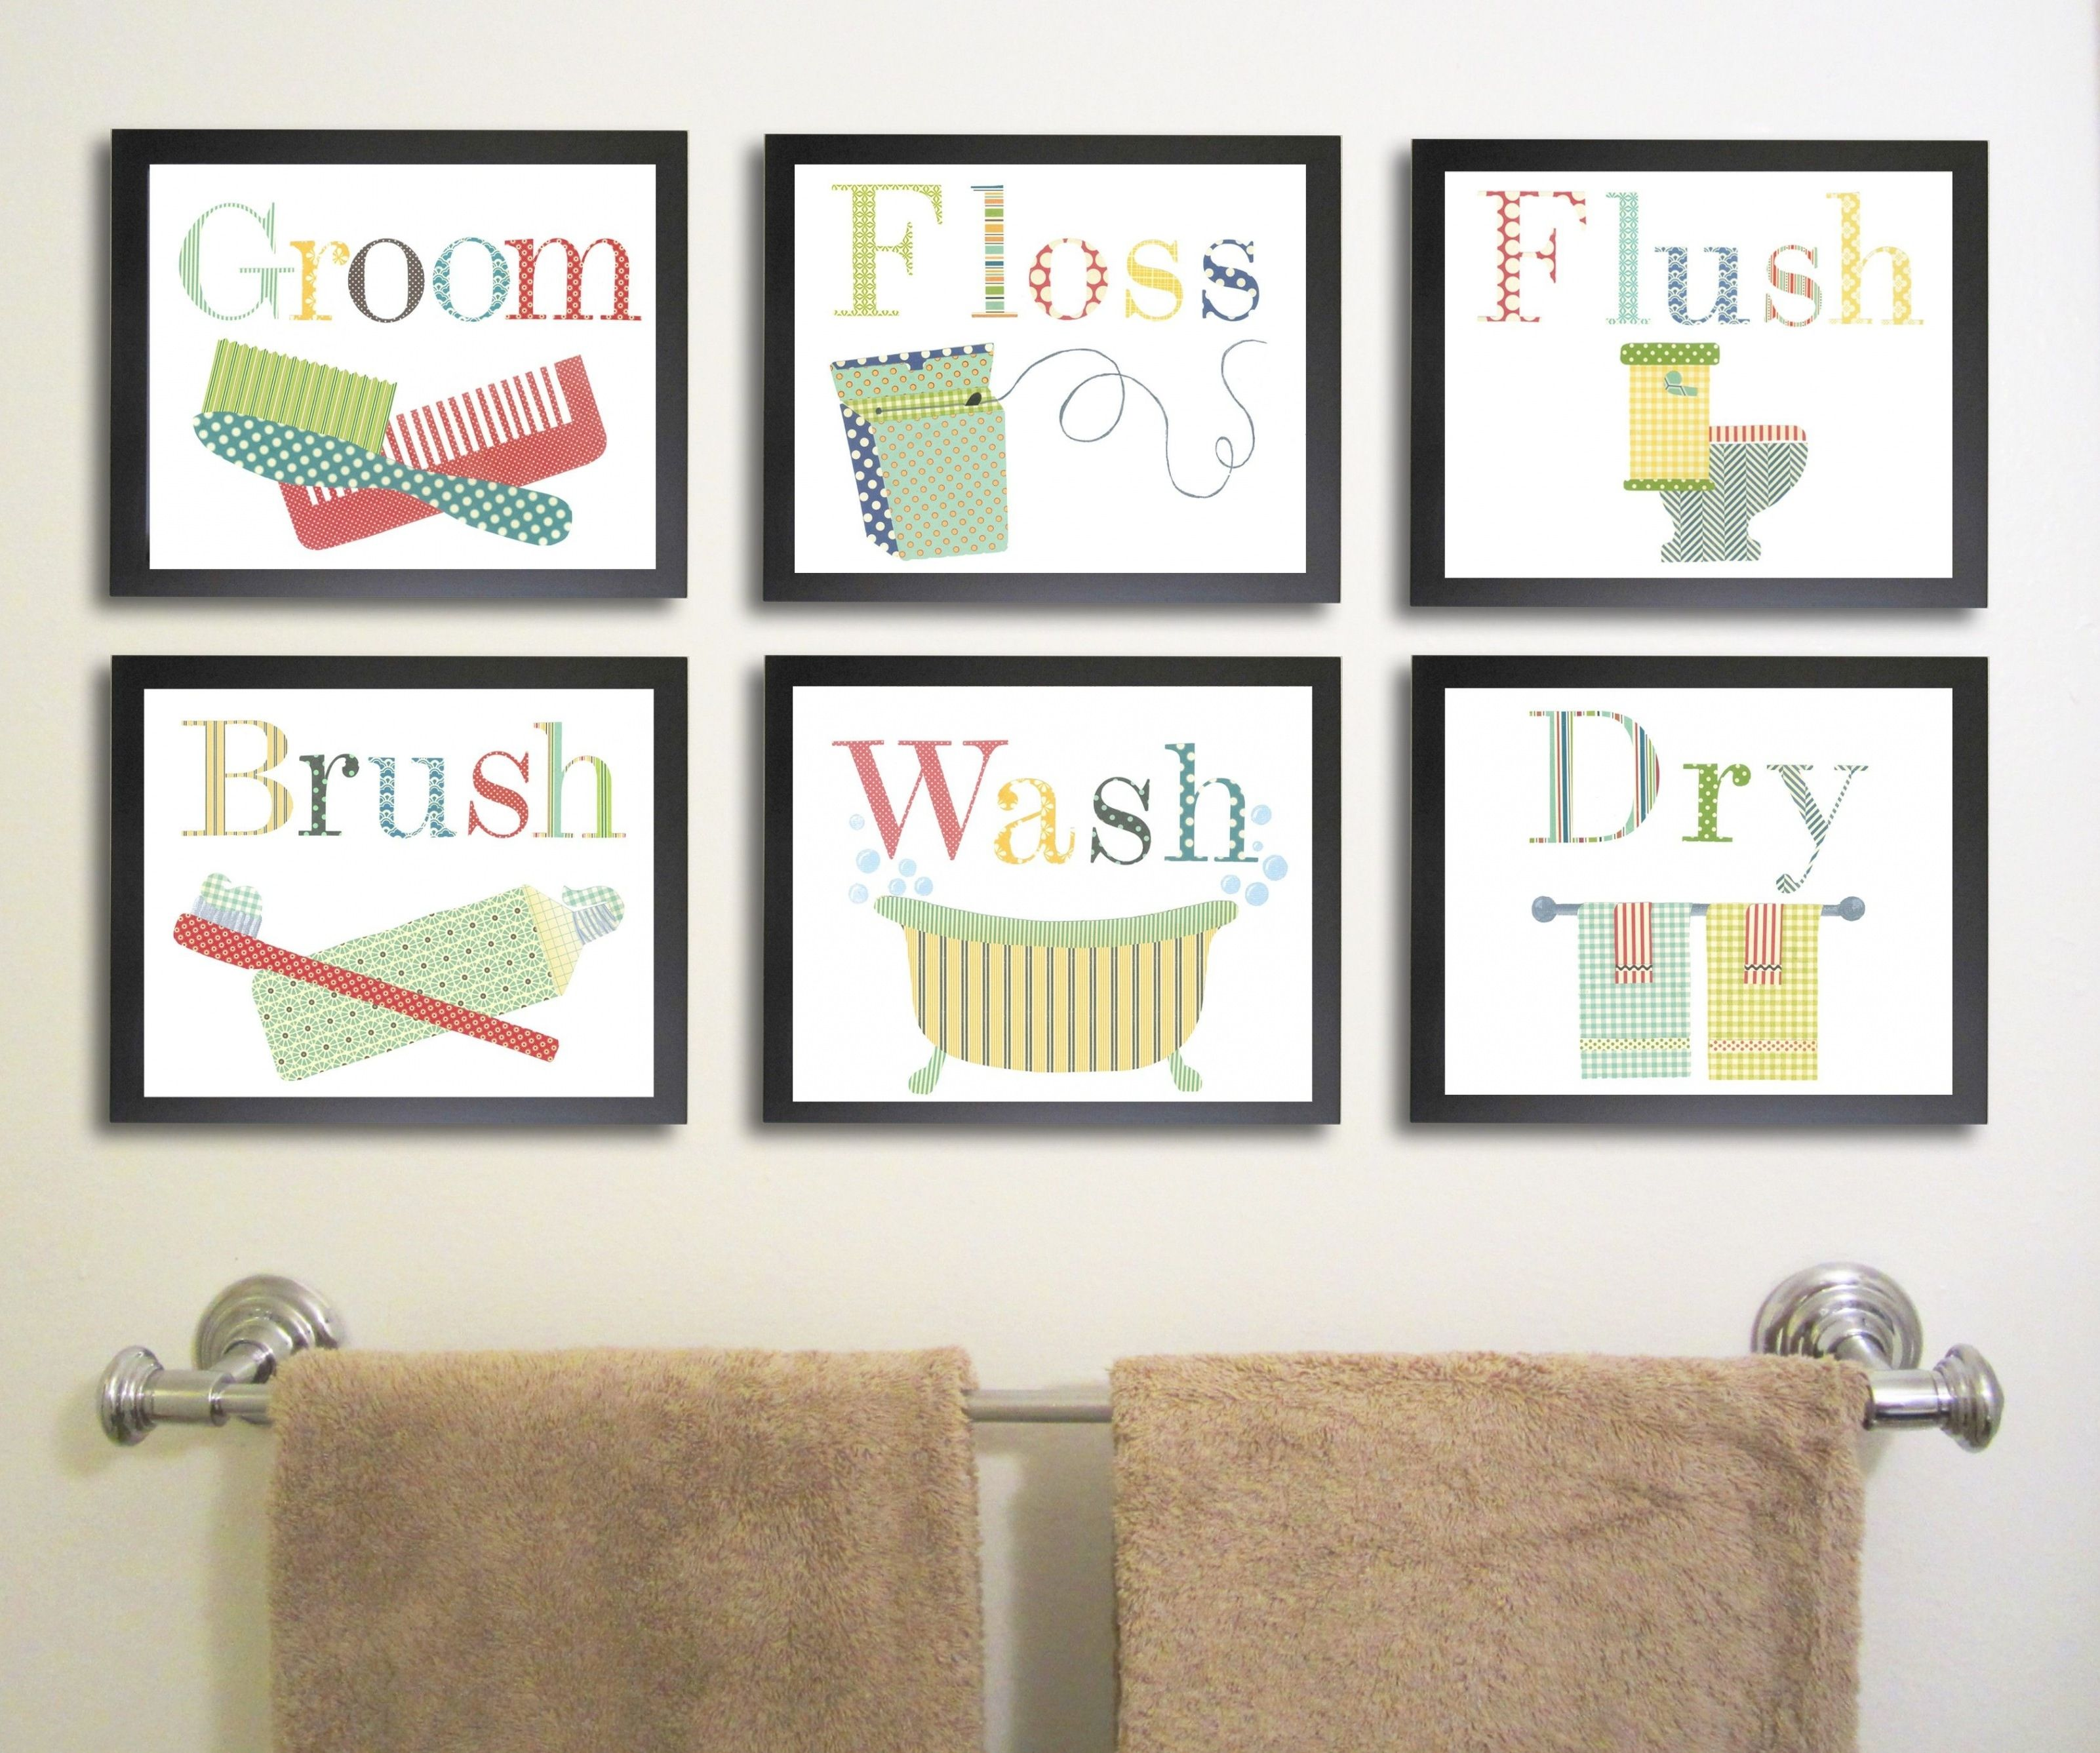 Wall Art Ideas Design : Top Art For Bathroom Walls Pictures For for ...